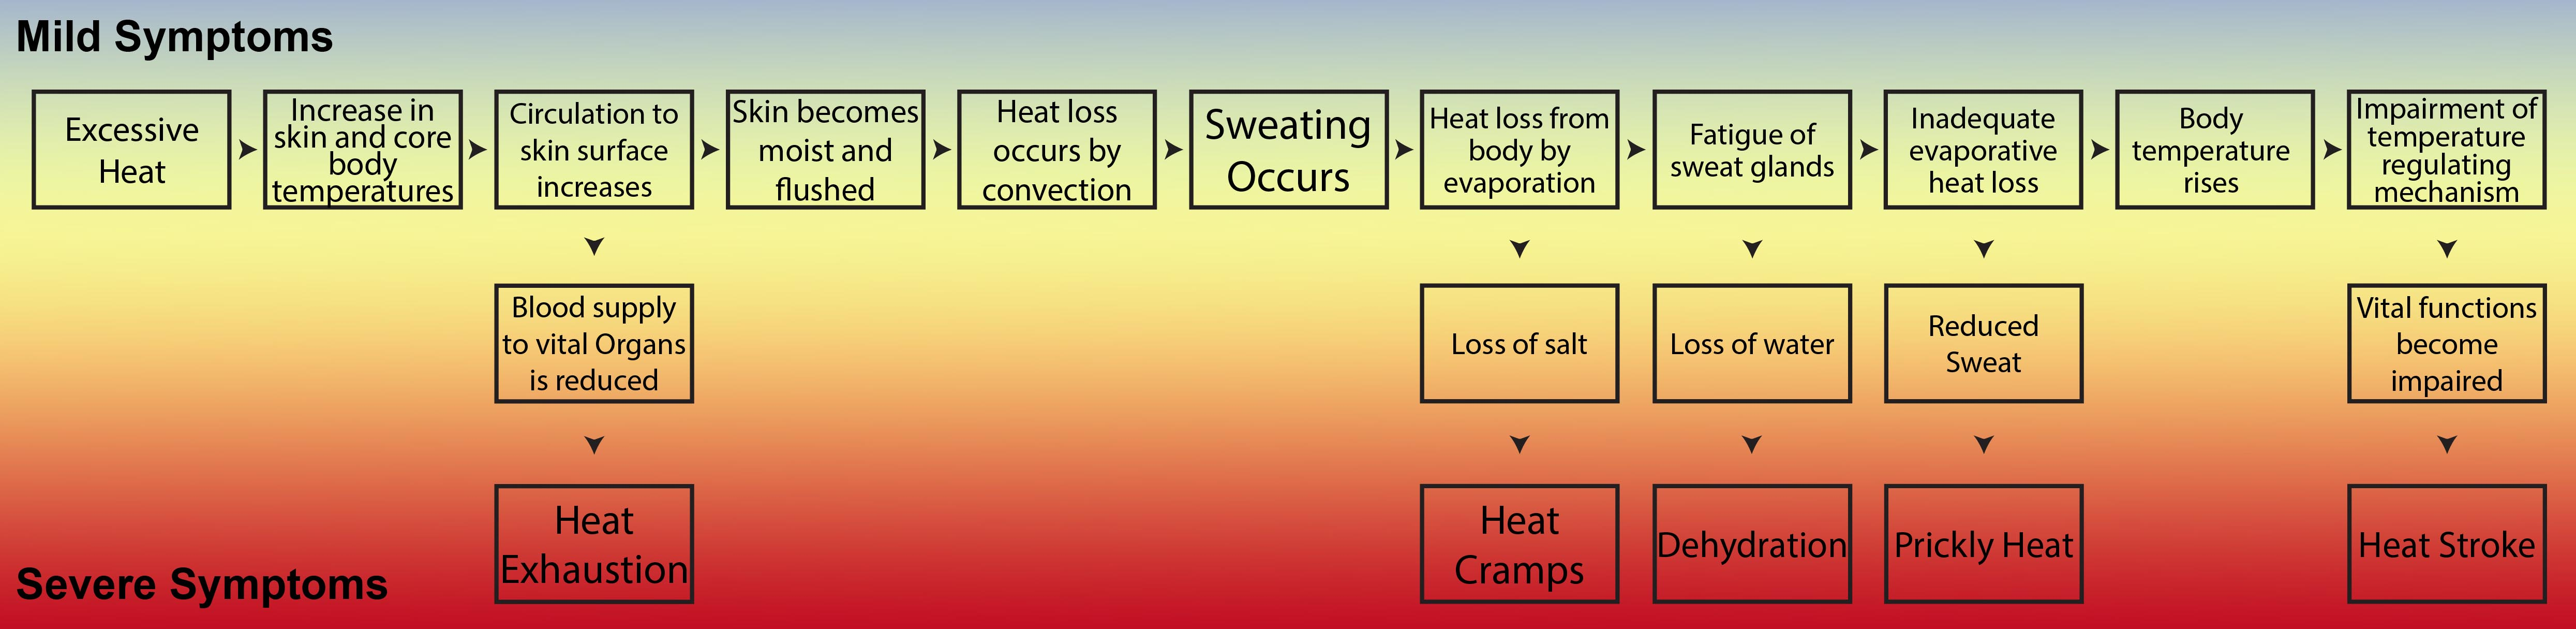 inforgraphic showing the quick progression of heat stress from dehydration to heat stroke